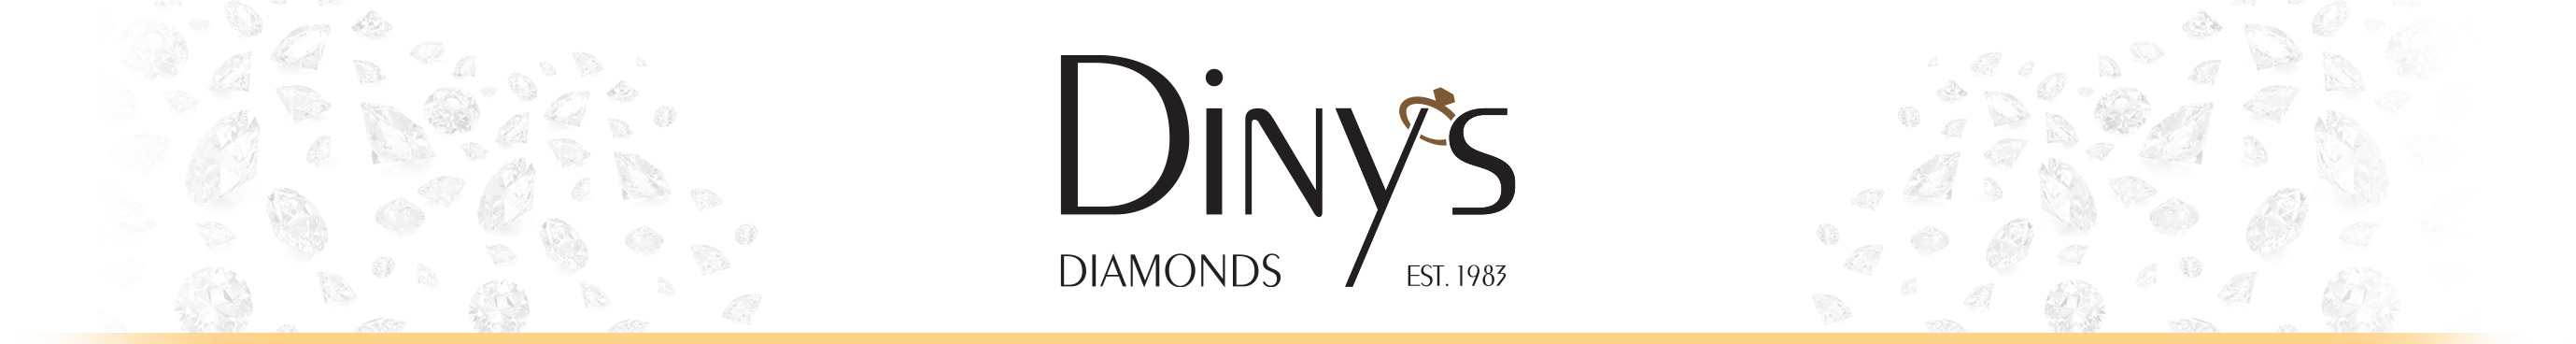 Diny's Diamonds Logo